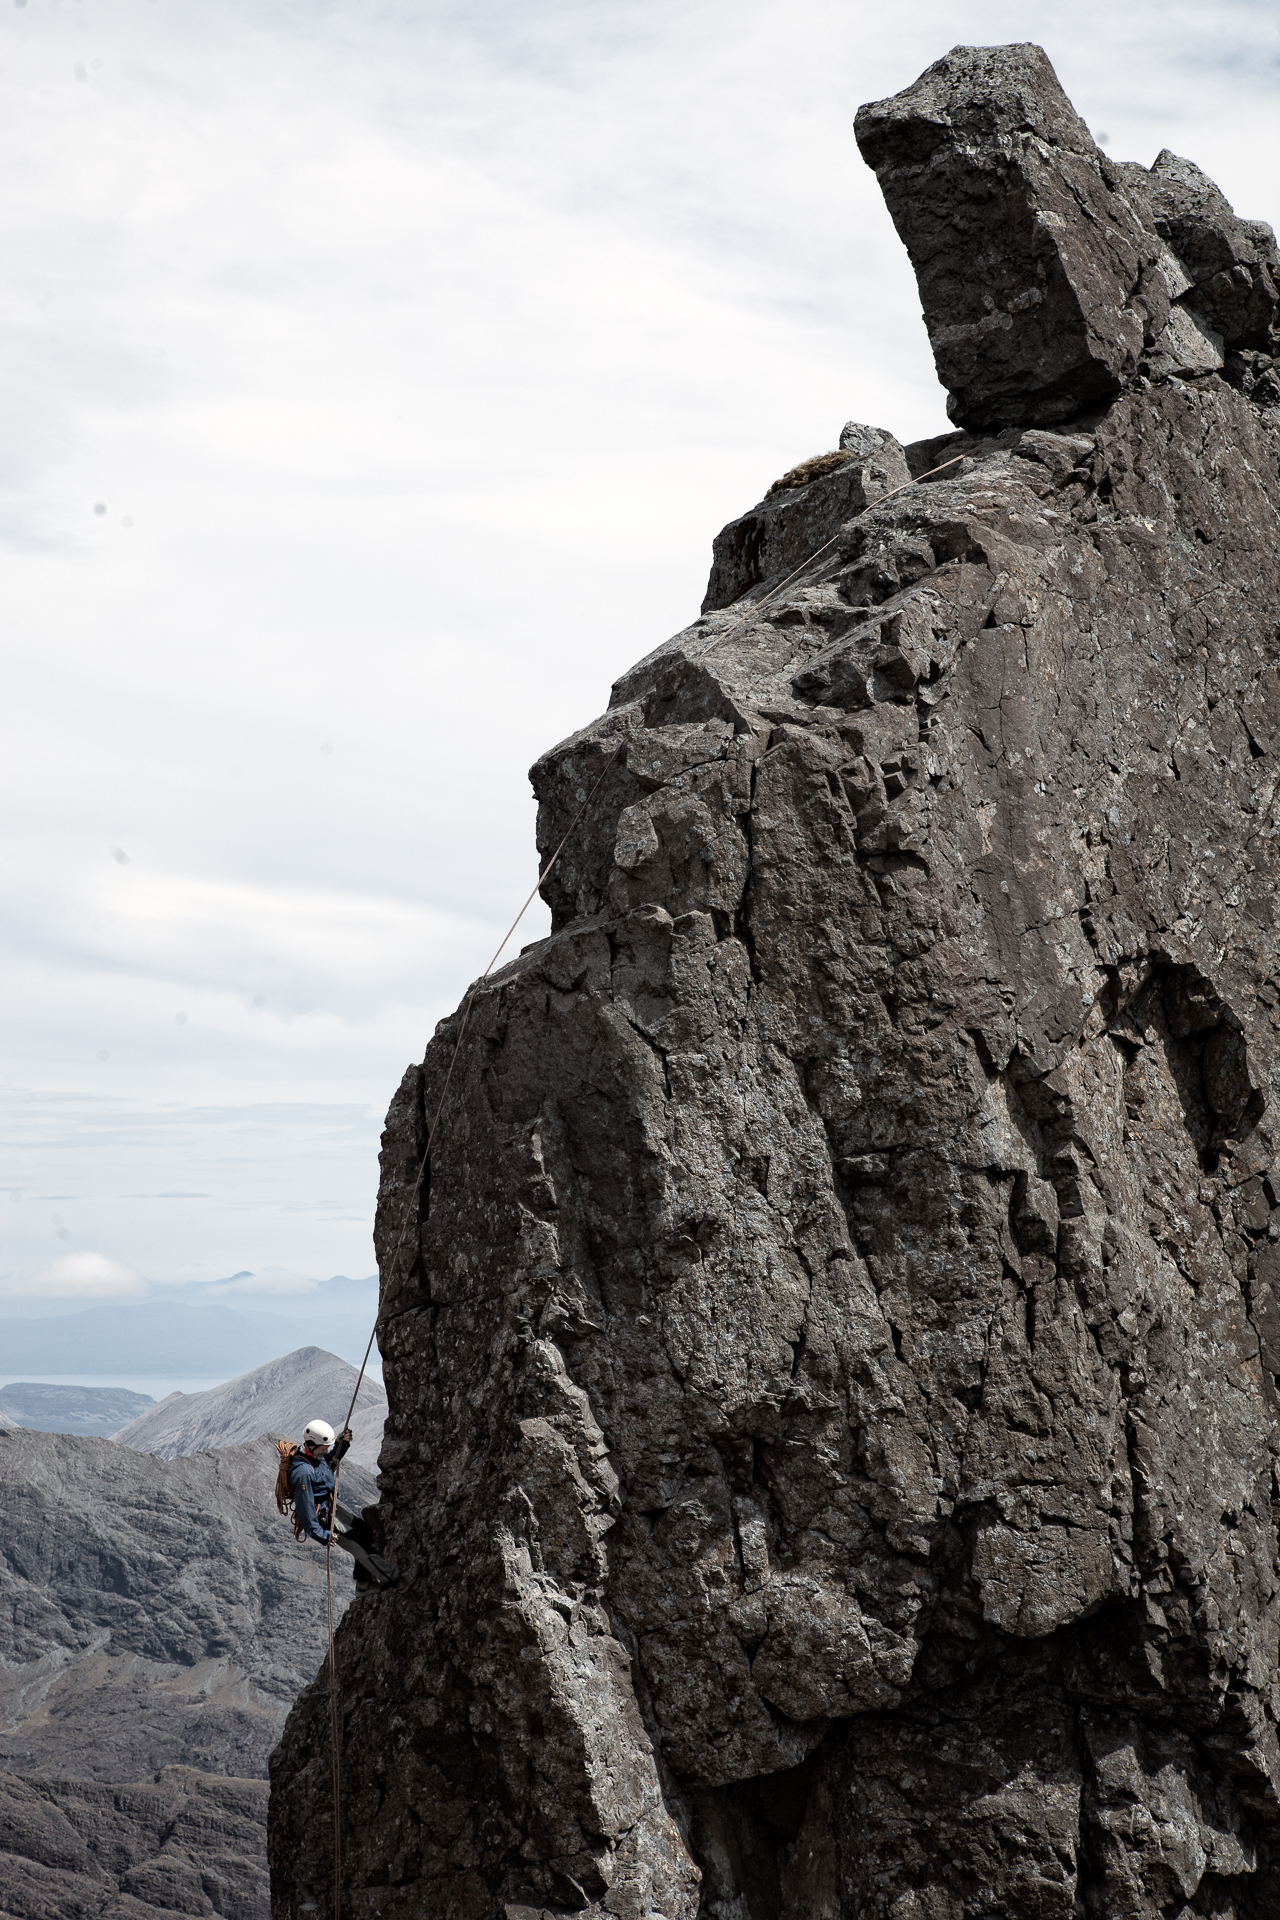 Abseiling from the In Pinn